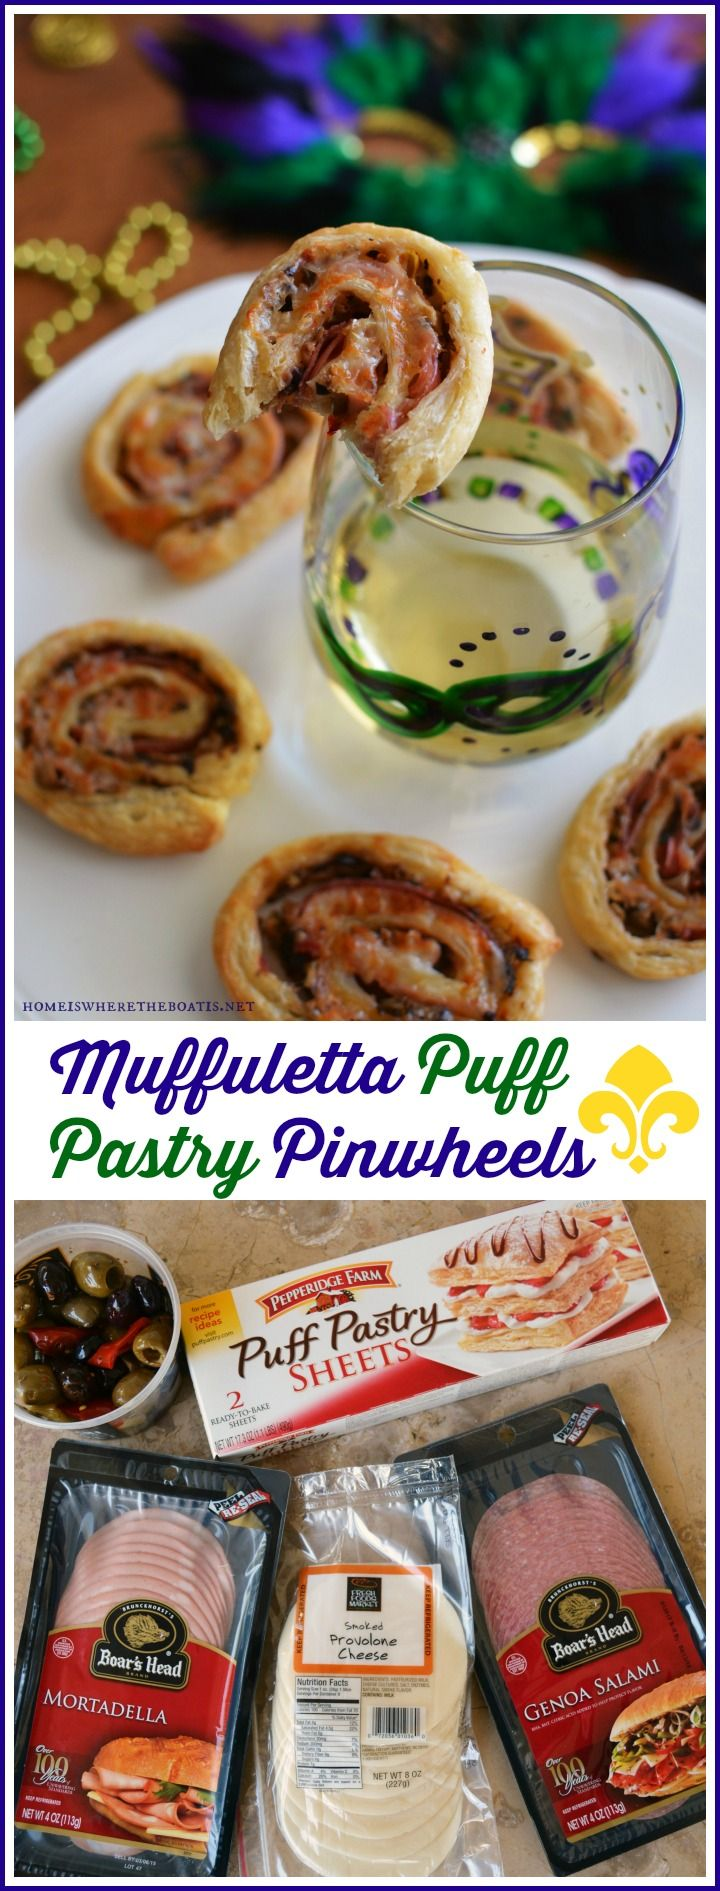 Let the Good Flavors Roll for Mardi Gras with Muffuletta Puff Pastry Pinwheels! Inspired by the quintessential New Orleans sandwich of cured meats, cheese and tangy olive salad, these pinwheels are a quick and easy to throw together for a taste of the Big Easy to celebrate Mardi Gras, or anytime you need a savory appetizer to serve with cocktails or enjoy with a glass of wine!